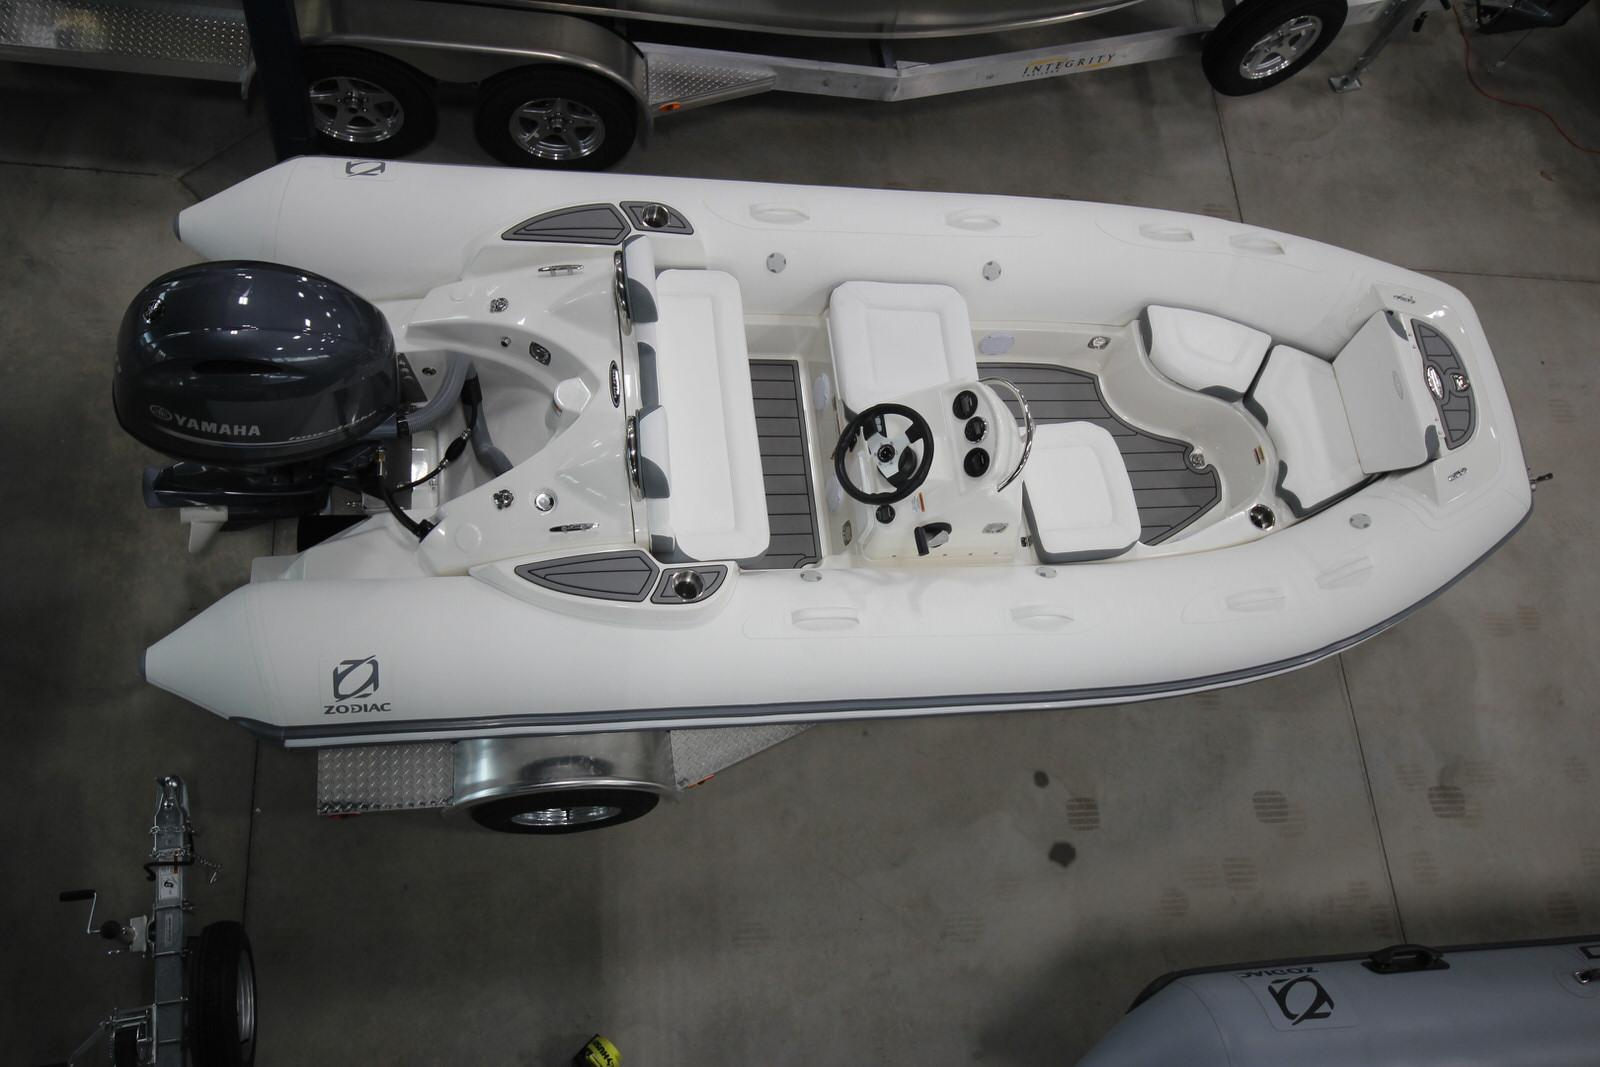 2022 Zodiac Yachtline 490 Deluxe NEO GL Edition 90hp On Order, Image 2